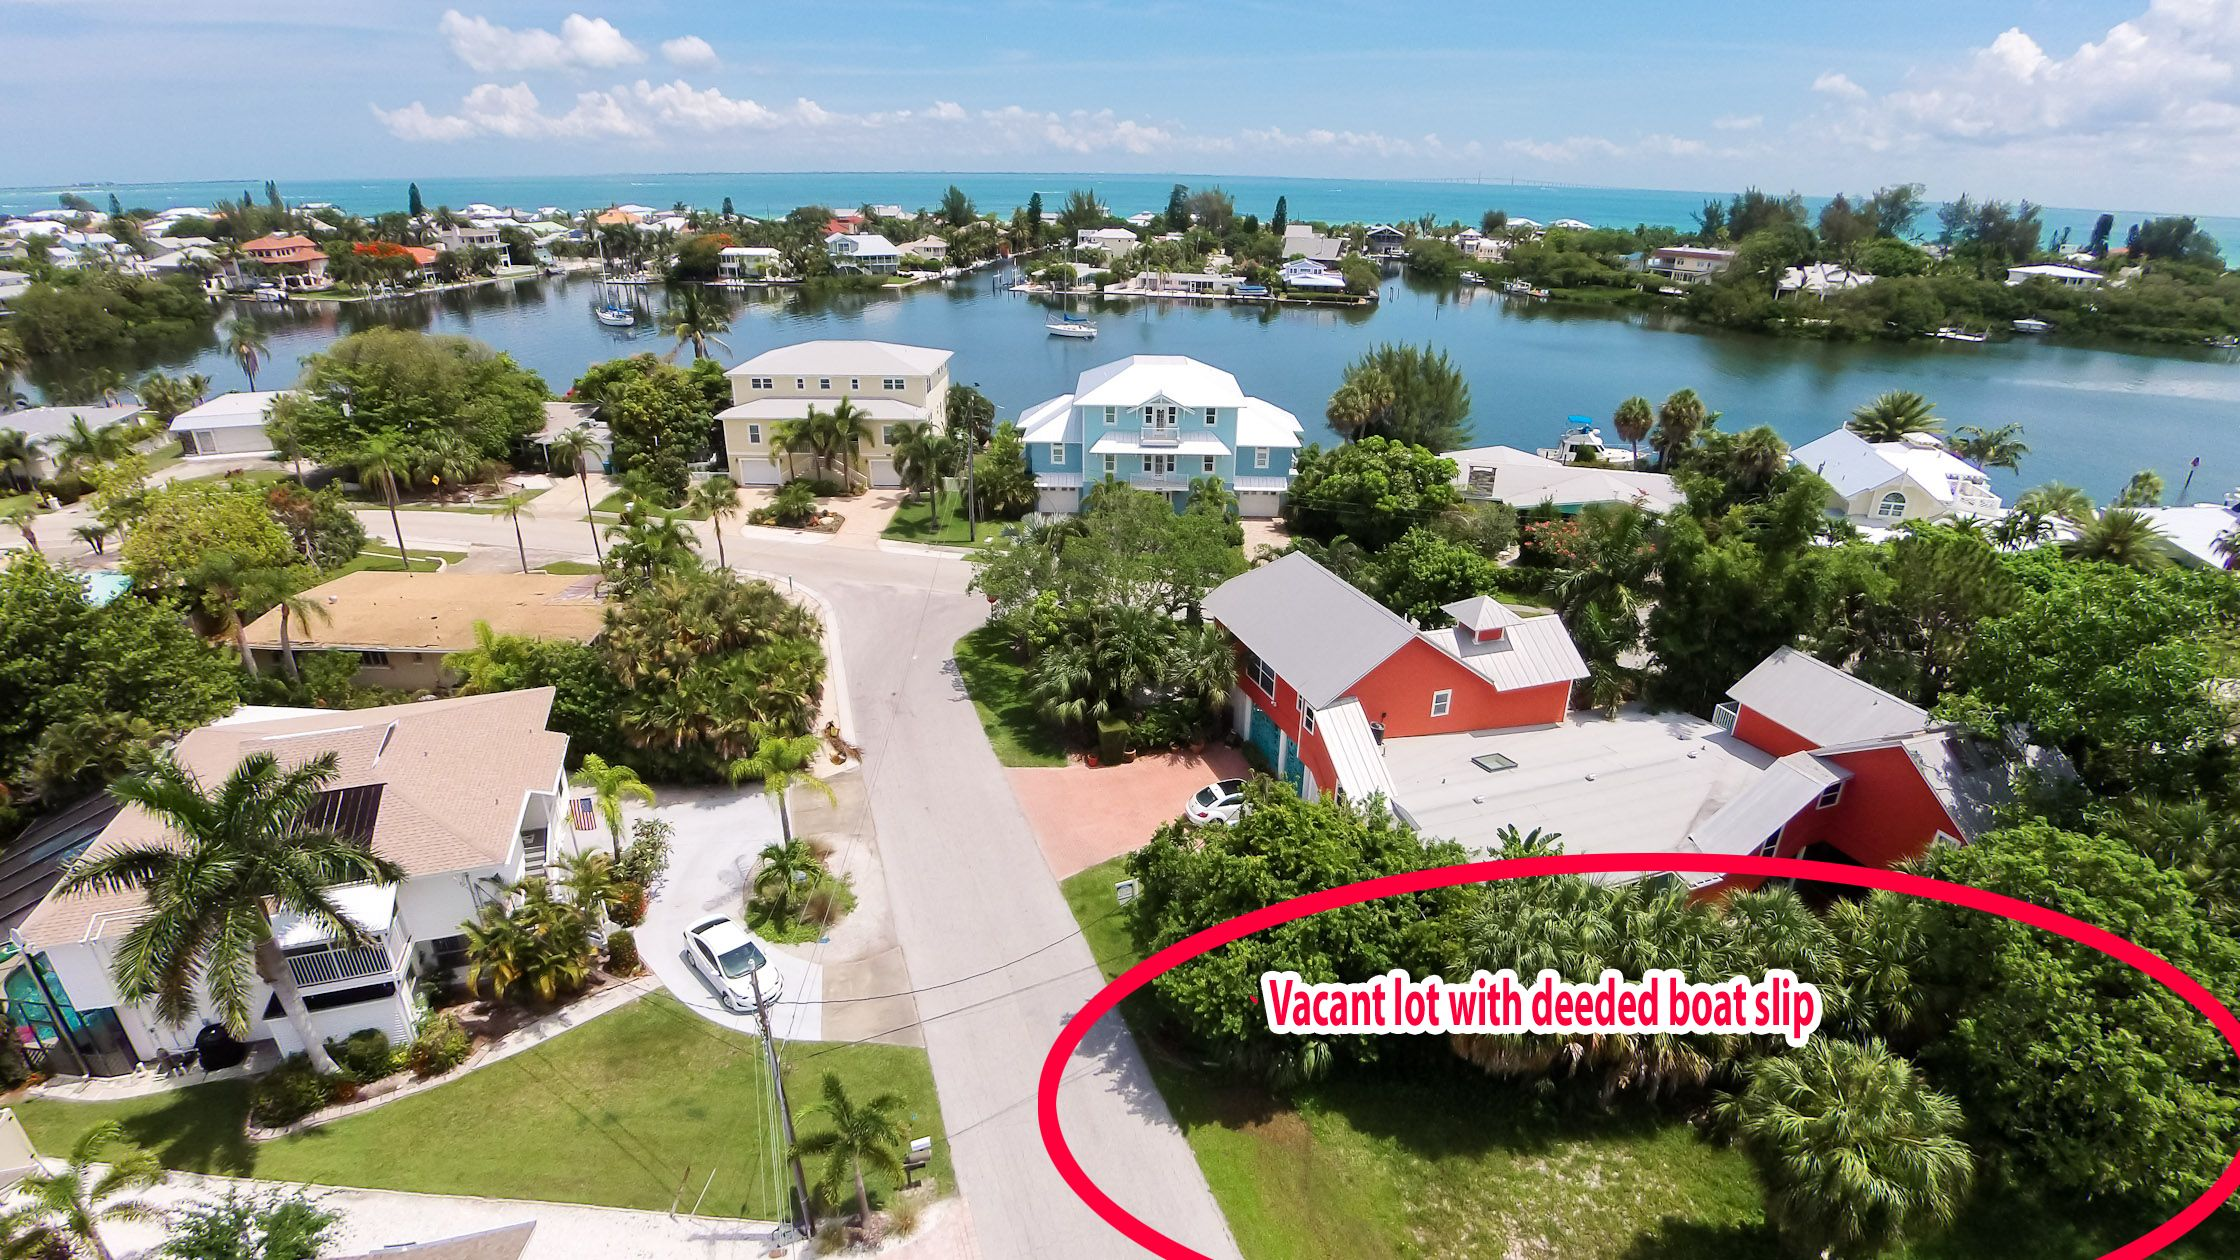 Vacant lot with deeded boat slip build your own dream home here on anna maria island live the florida life call me 941 232 2216